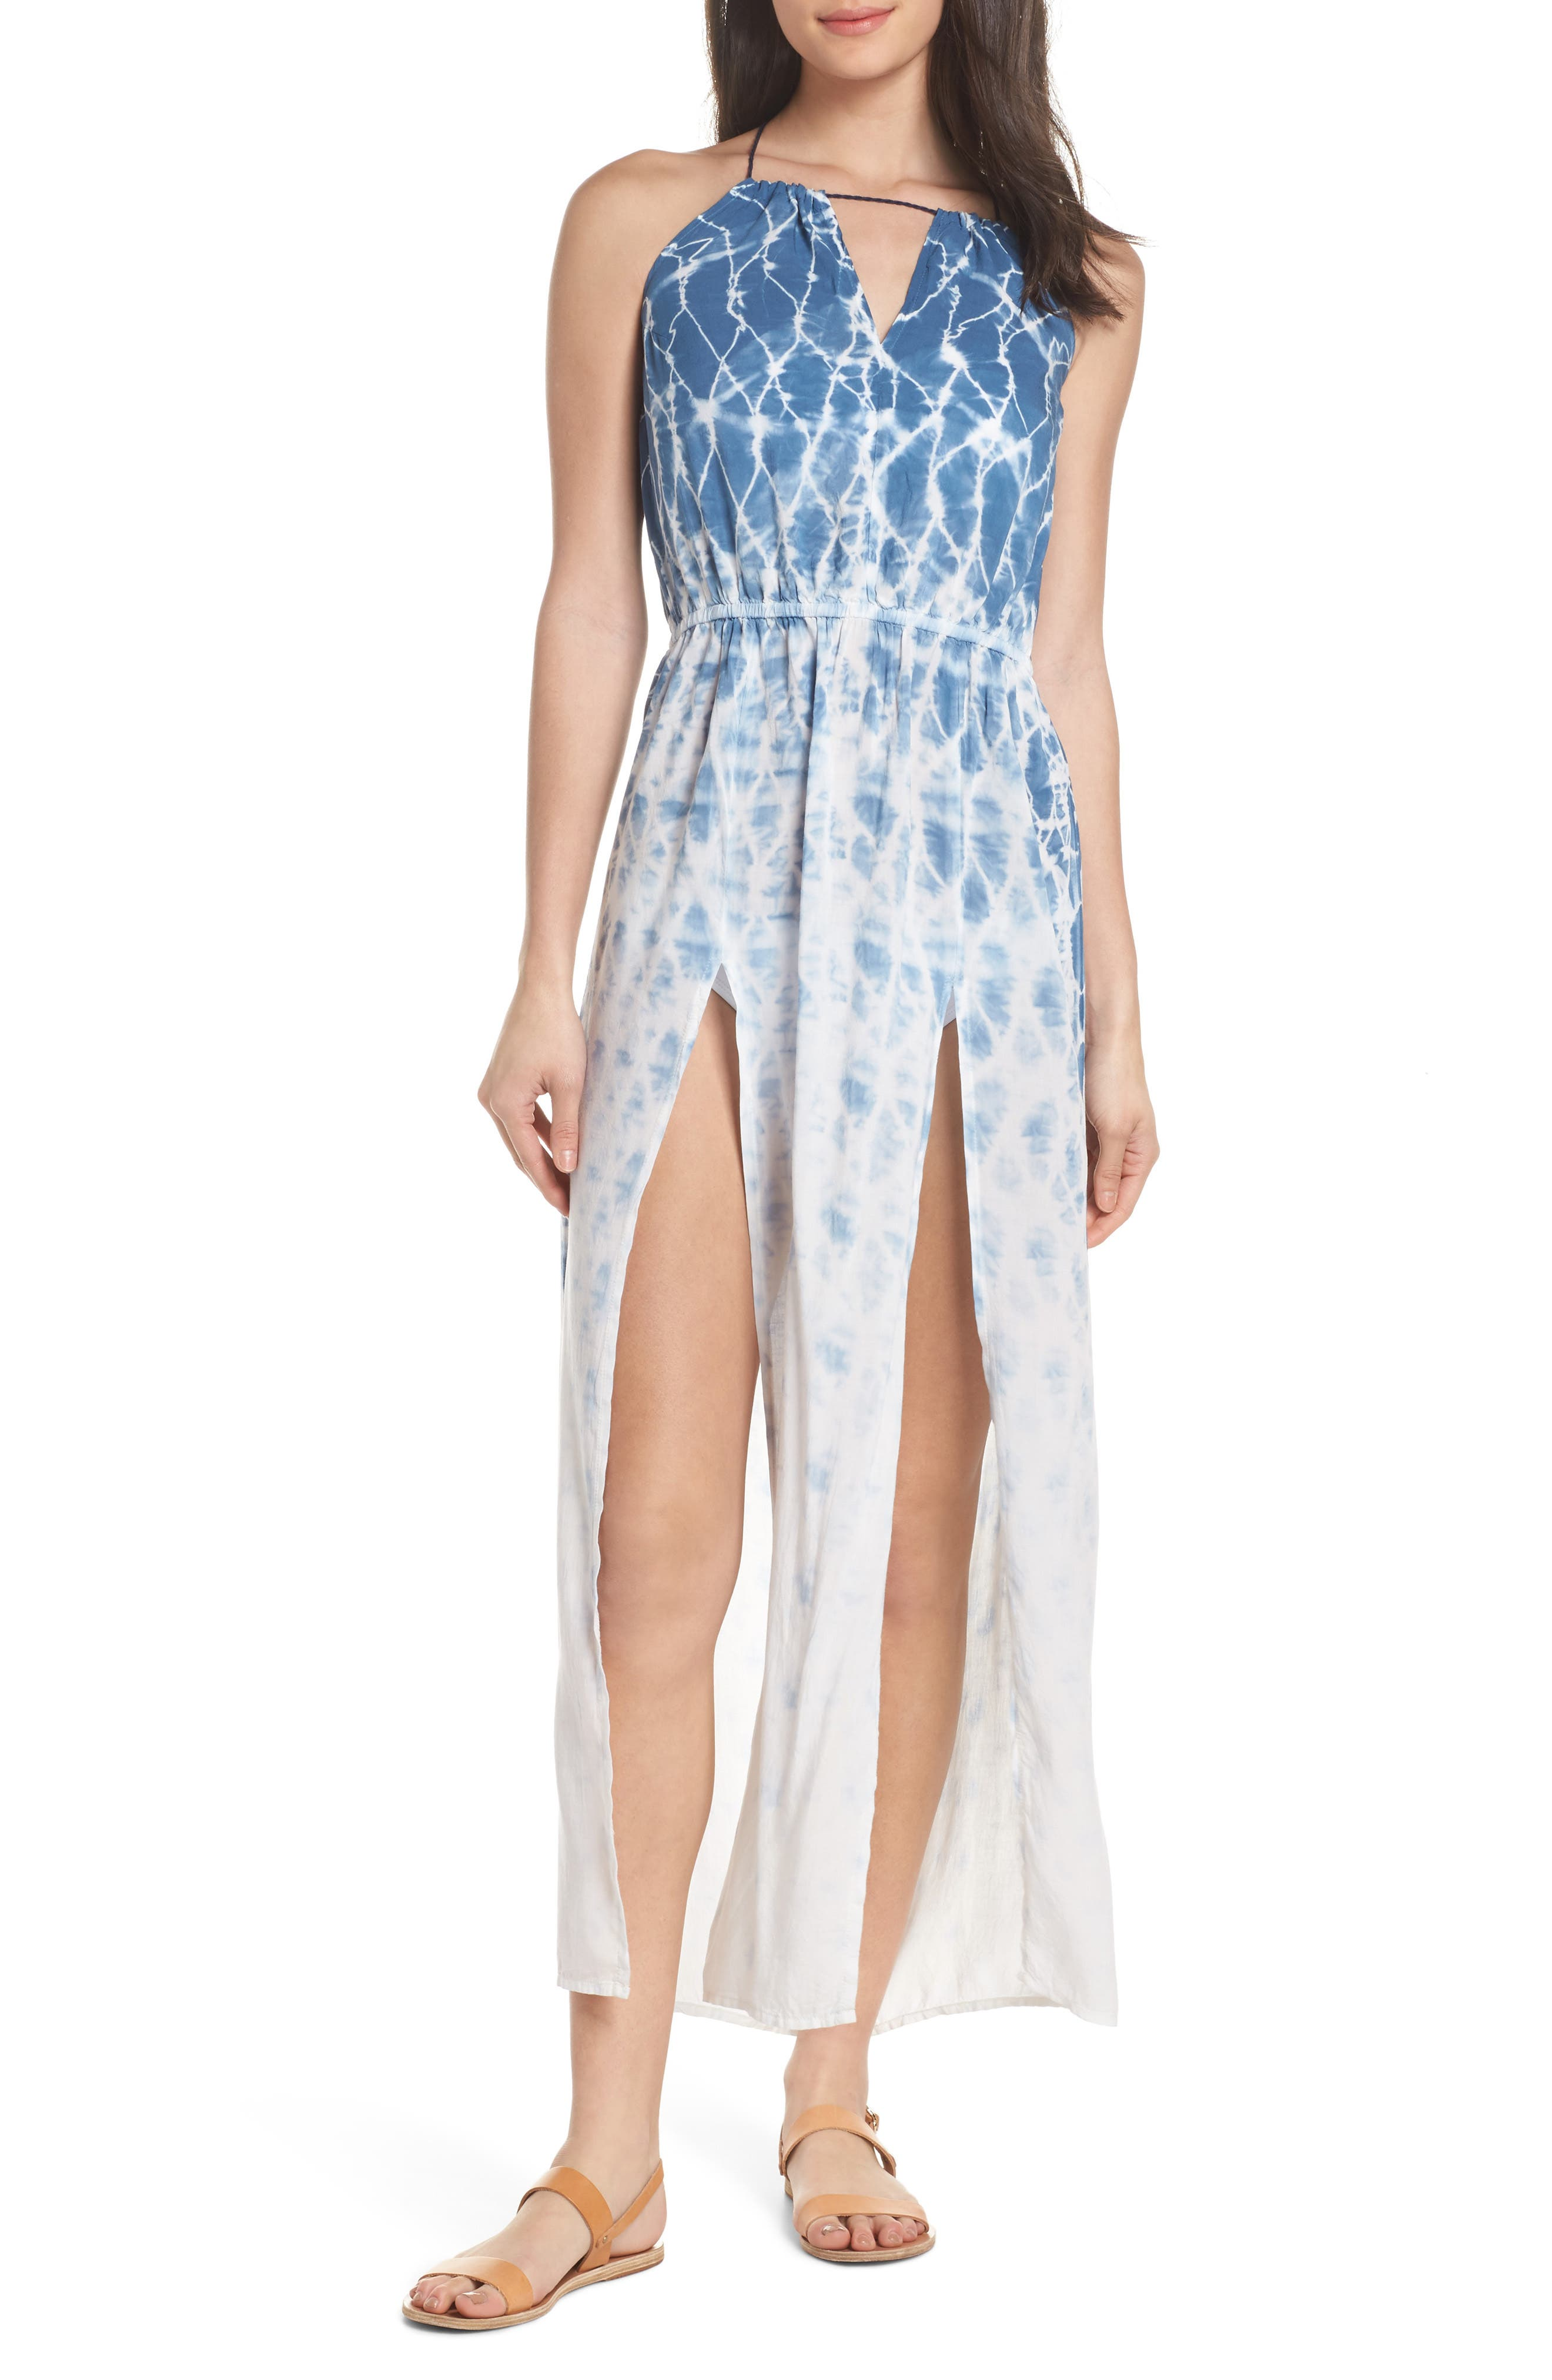 Surf Gypsy Tie Dye Halter Cover-Up Maxi Dress